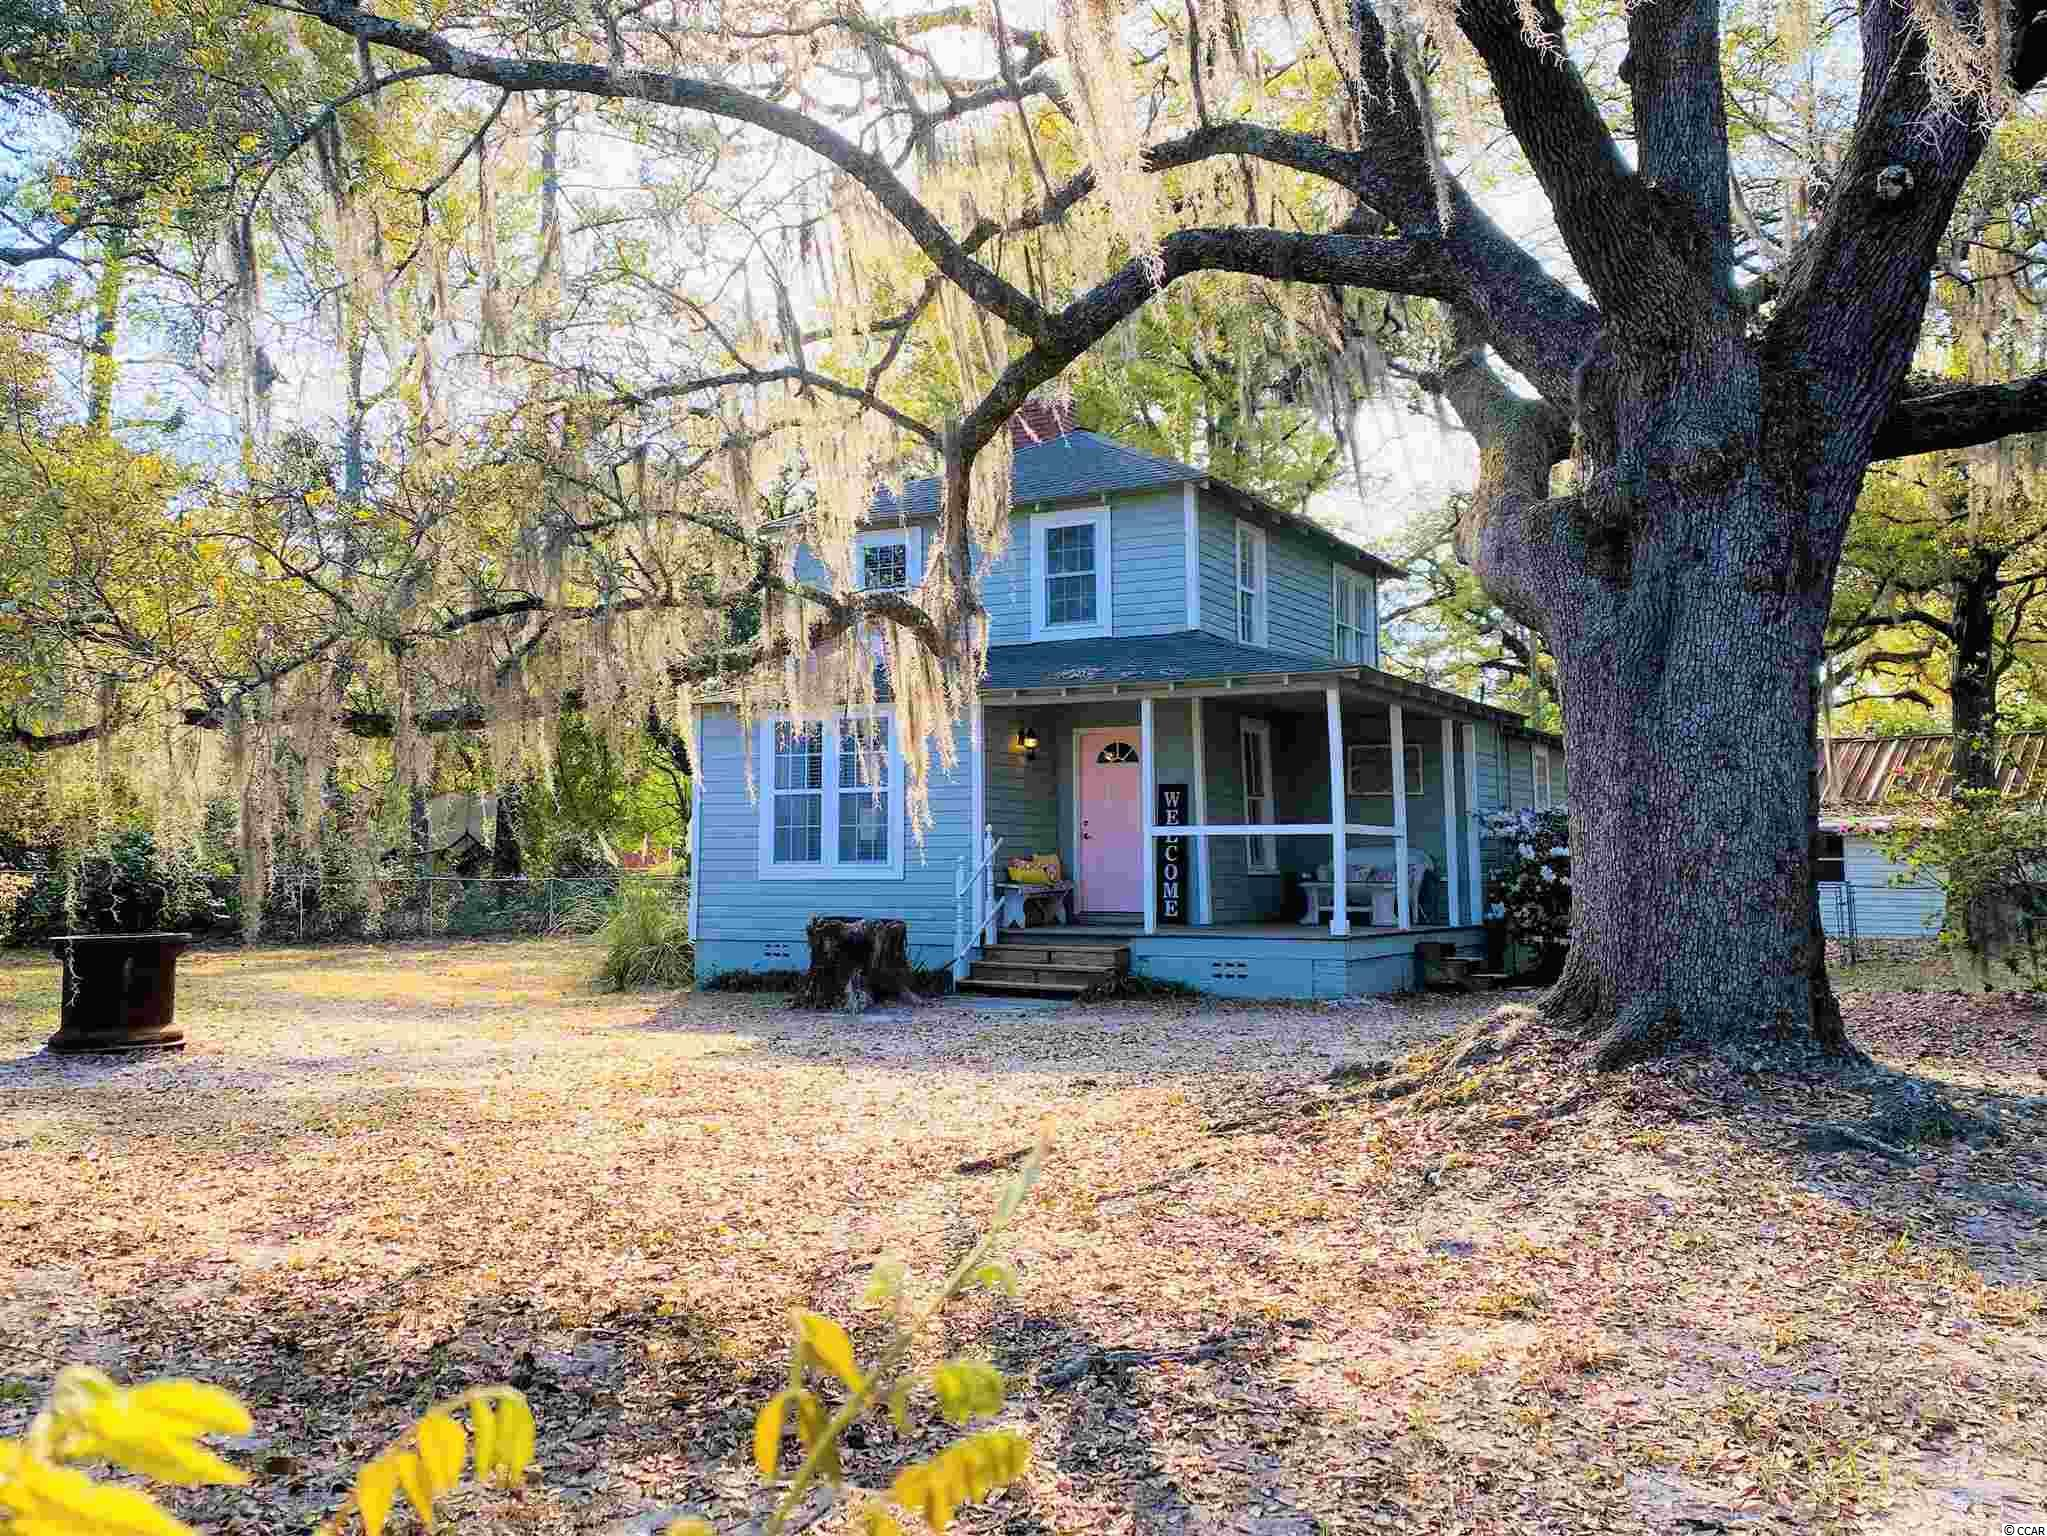 "2218 Old Charleston Rd. in historic Georgetown, South Carolina!  This quaint home is the original farm house that was once part of a twelve acre tract known as ""Owens Farm"".  Built in 1922 with hand hewn timber and surrounded by amazing live oak trees.  Rumor has it that ""back in the day"" there were so many oaks the children could climb from one tree to the next without touching the ground!  There was also once a mercantile on the corner that was possibly the last stop on the way to Charleston - interesting to know little bits of history!  The home has three bedrooms with the owner's suite being down stairs and one bathroom that has been recently renovated. The cozy great room has hardwood floors and an old fireplace, and there is a country kitchen with new stainless appliances and a formal dining room area. Cute front porch, just under half acre lot and partially fenced yard with azaleas, camelias, and wisteria. Detached workshop with an adjacent music studio/rec room and plenty of room for expanding the home if needed.  Priced to sell ""as is"" and waiting on a little restoration/TLC and maybe even a tin roof - just sayin'.  Close to historic downtown Georgetown and the Harbor Walk shops and wonderful restaurants, easy access to salt or fresh water boat launches where you can go out and enjoy any number of boating and fishing opportunities. *Buyer is responsible for verifying square footage."